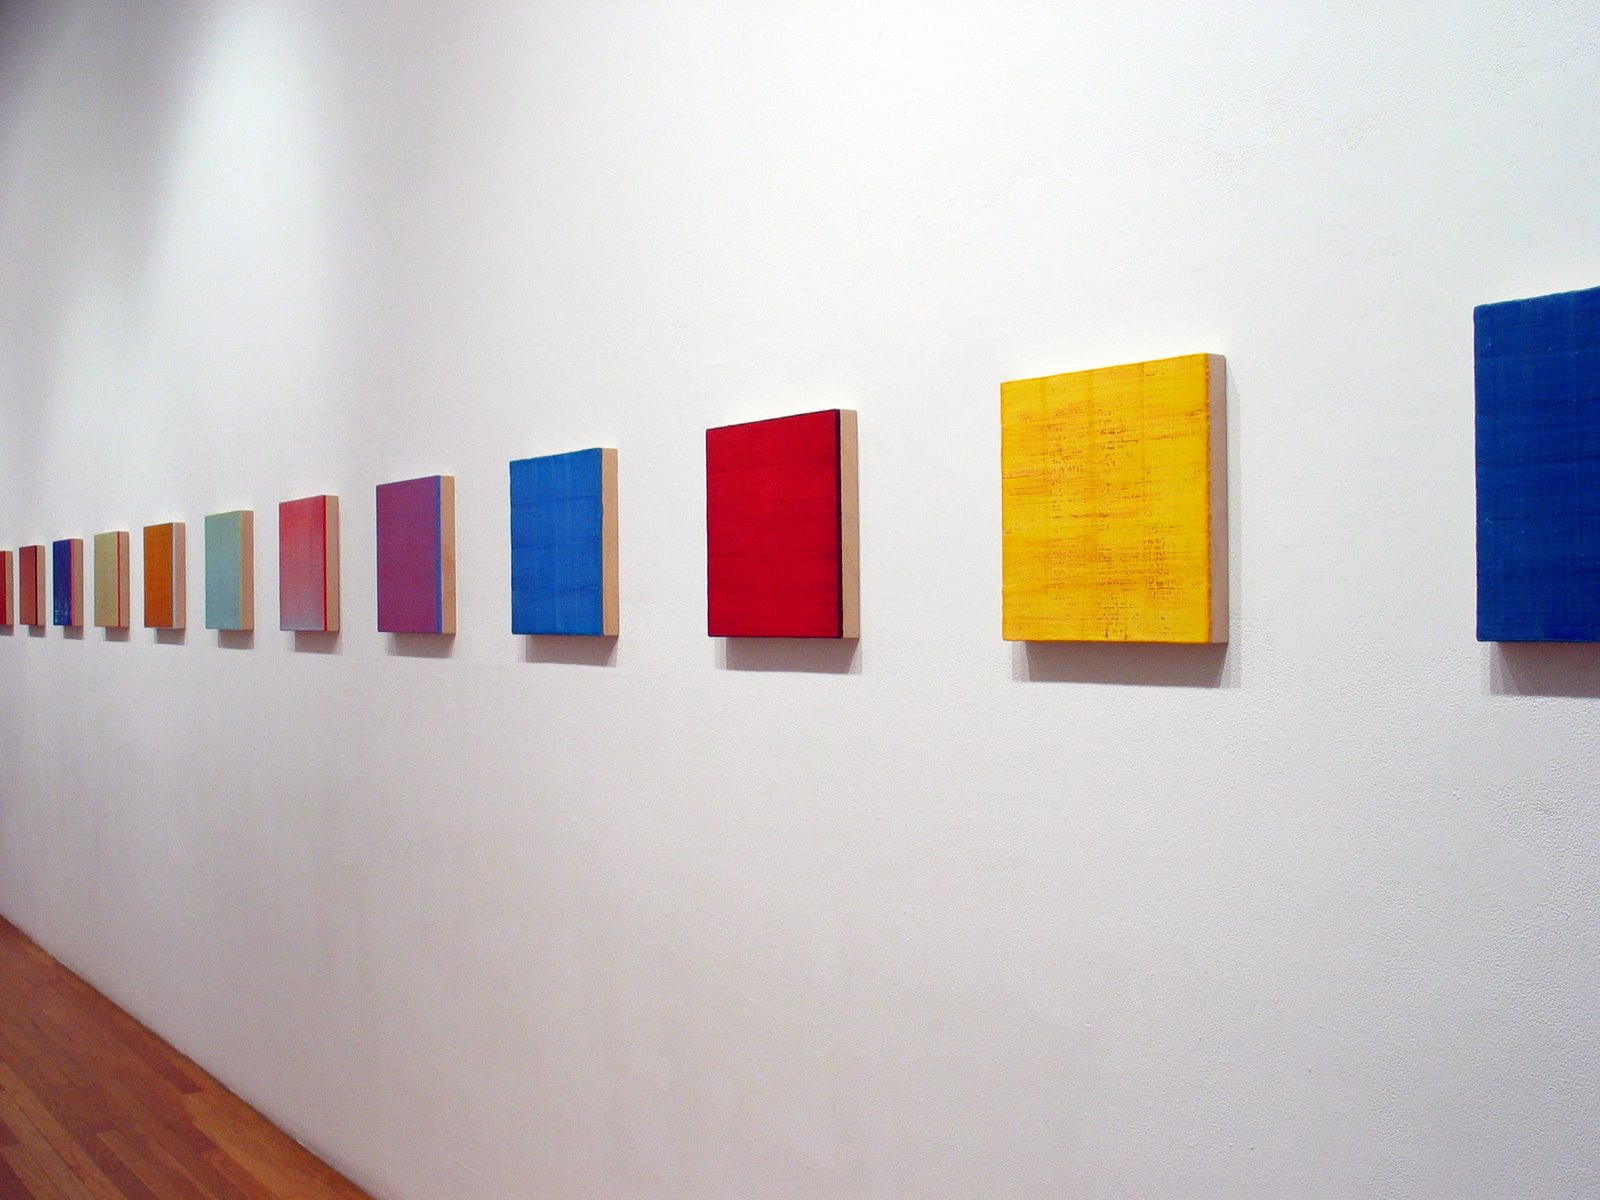 Installation view: OK Harris Gallery, New York City, 2007